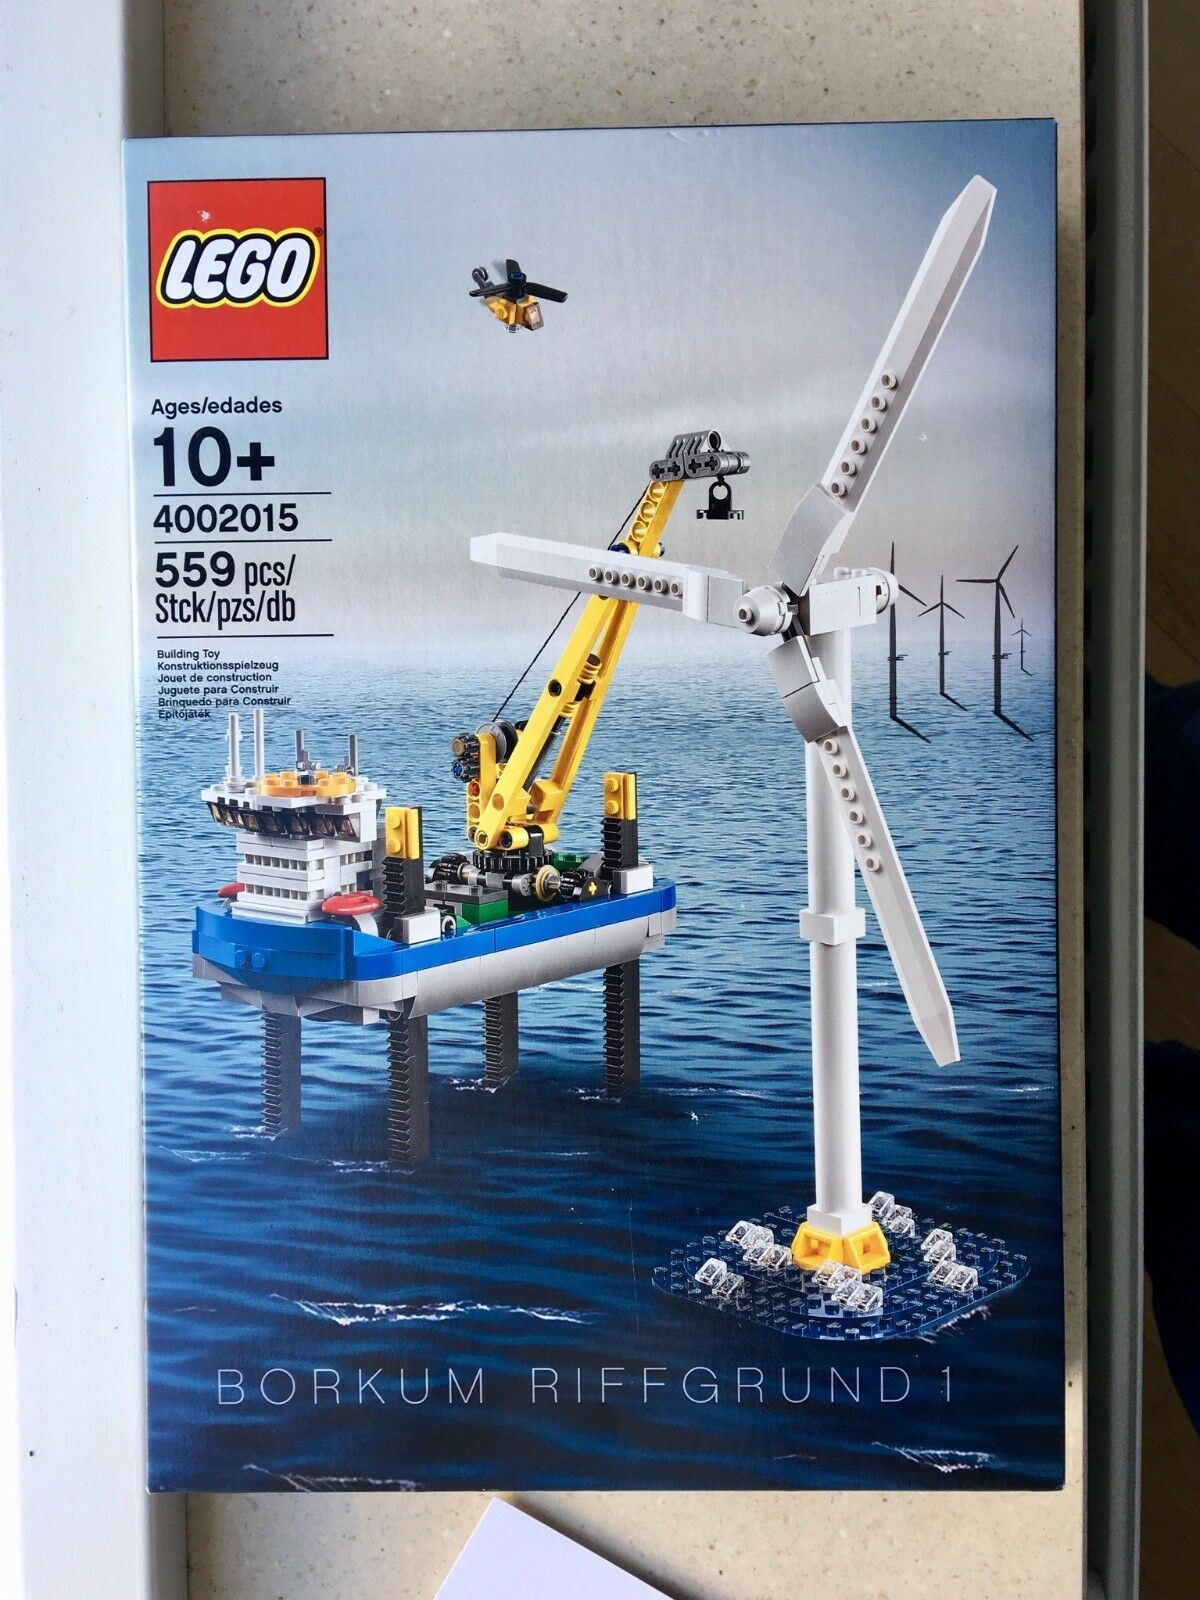 Lego employee gift 4002015 Borkum Riffgrund 1 with greeting card, new and sealed